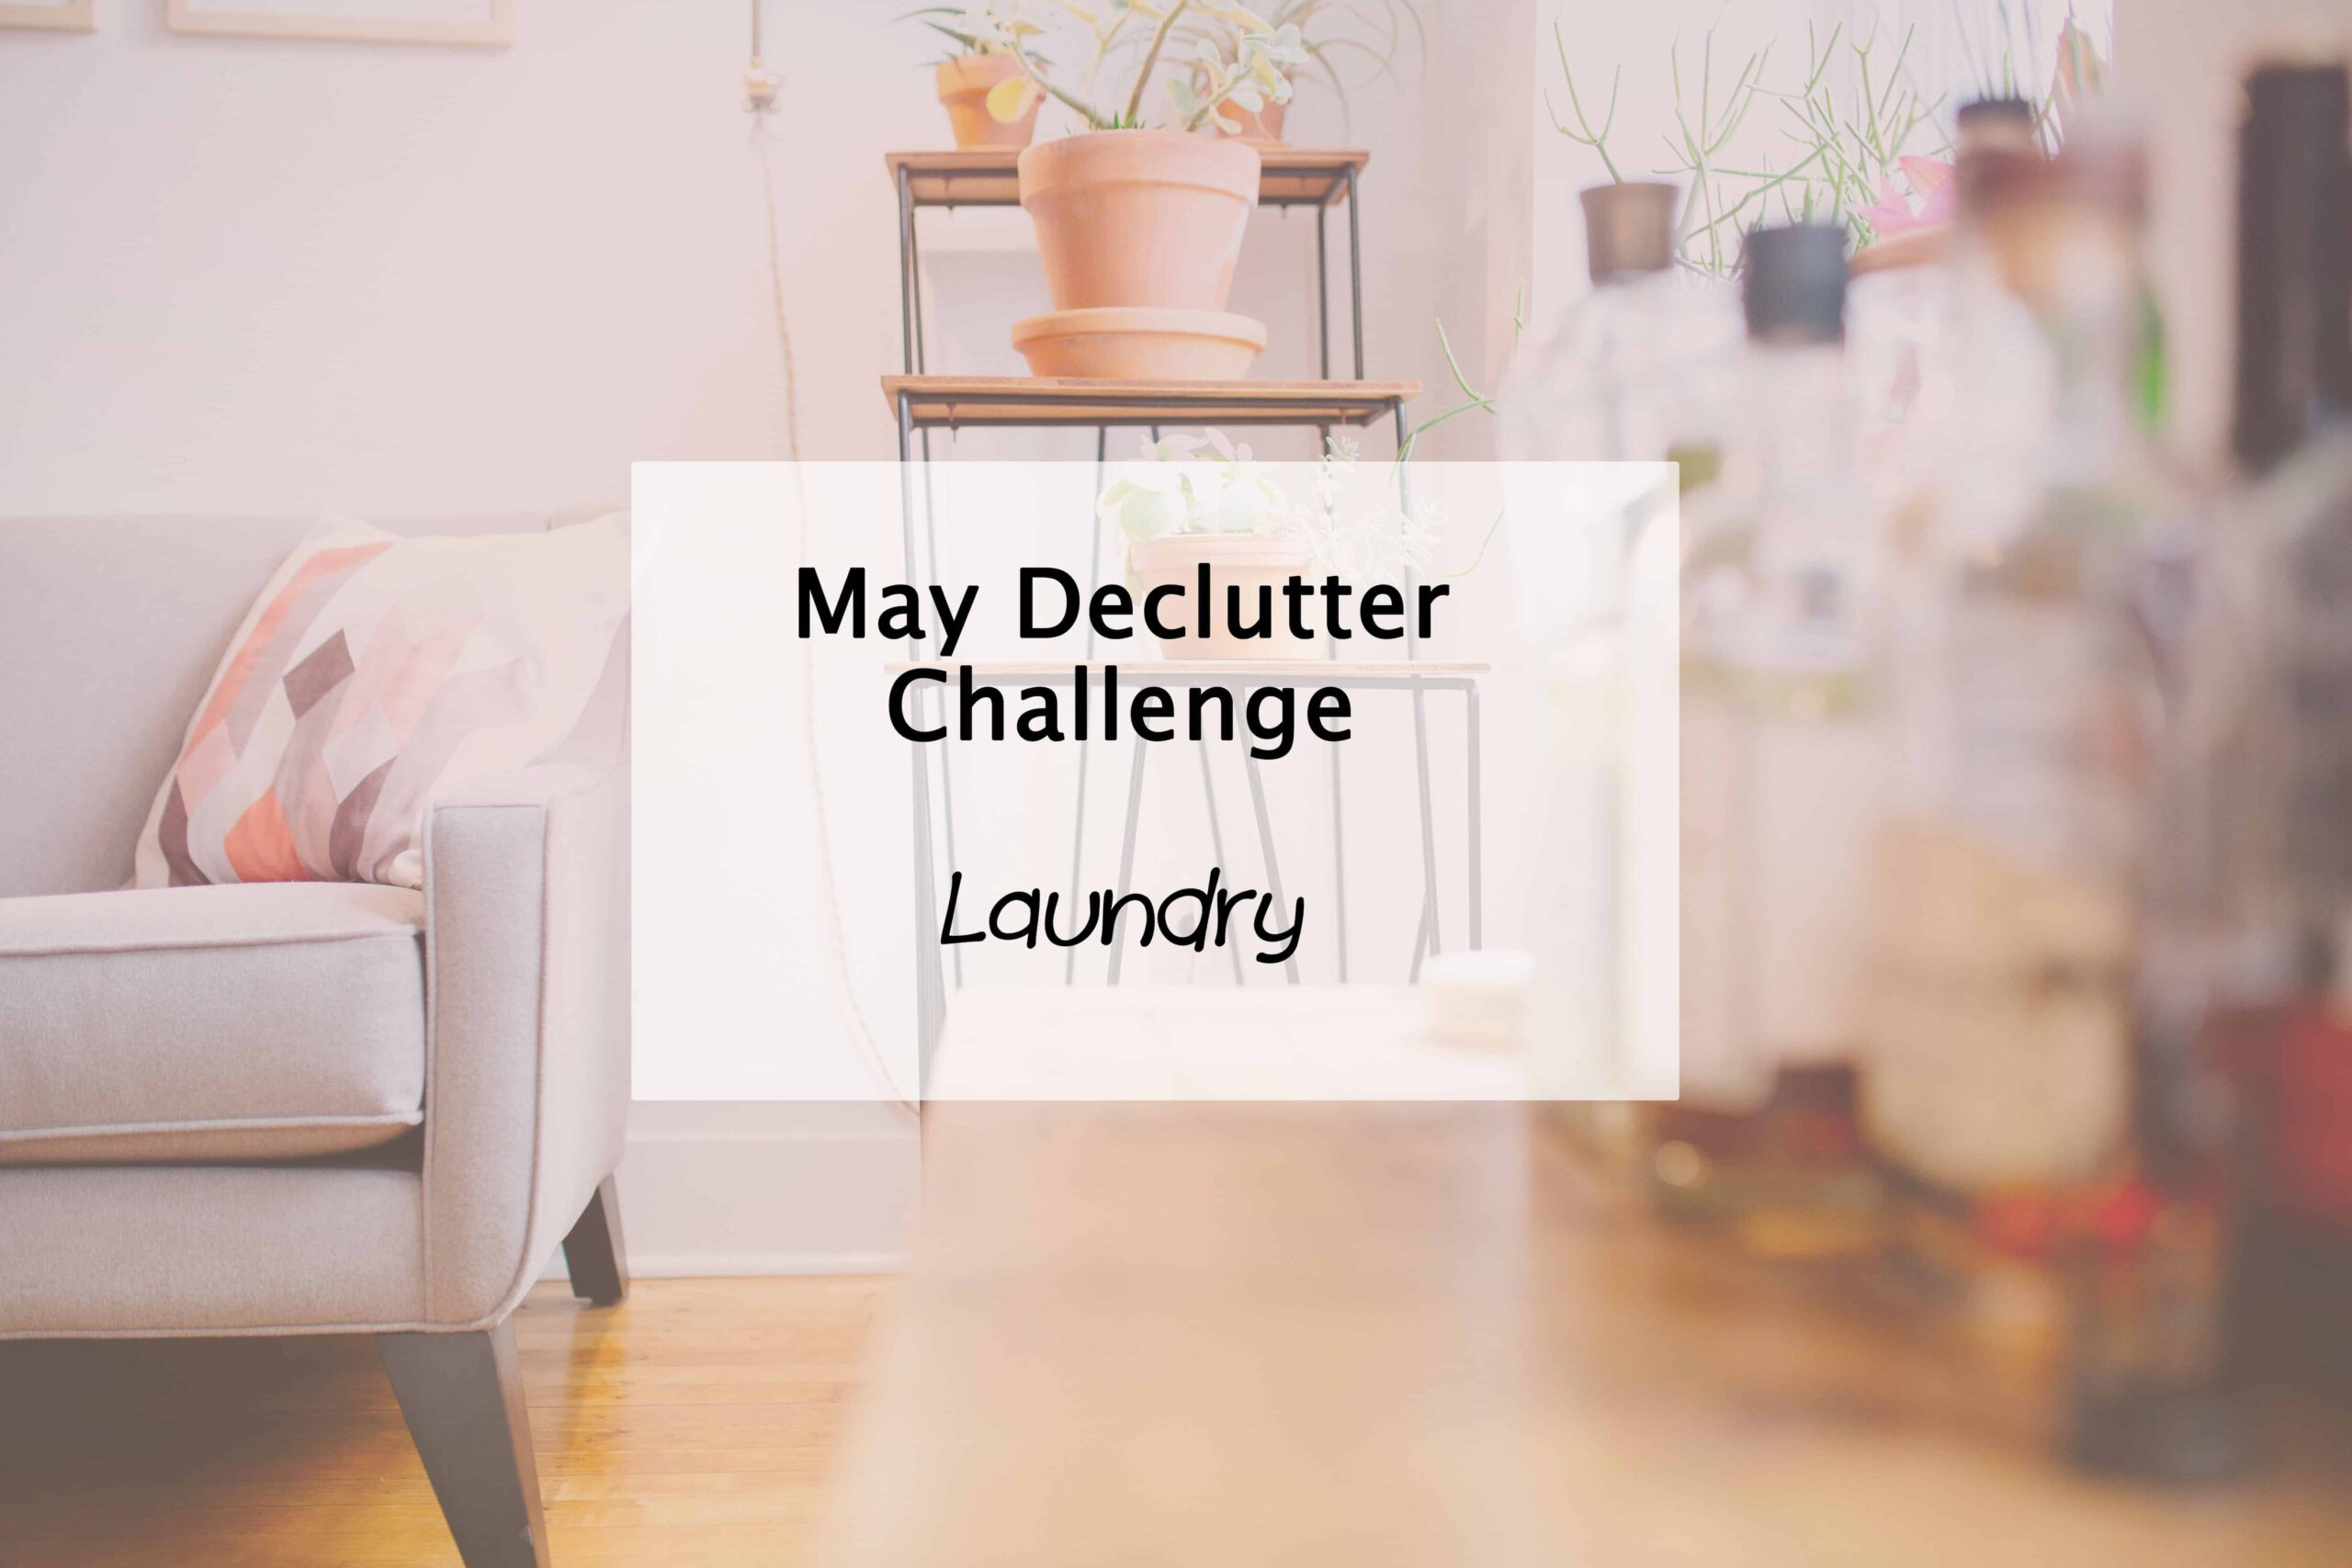 May declutter laundry scaled